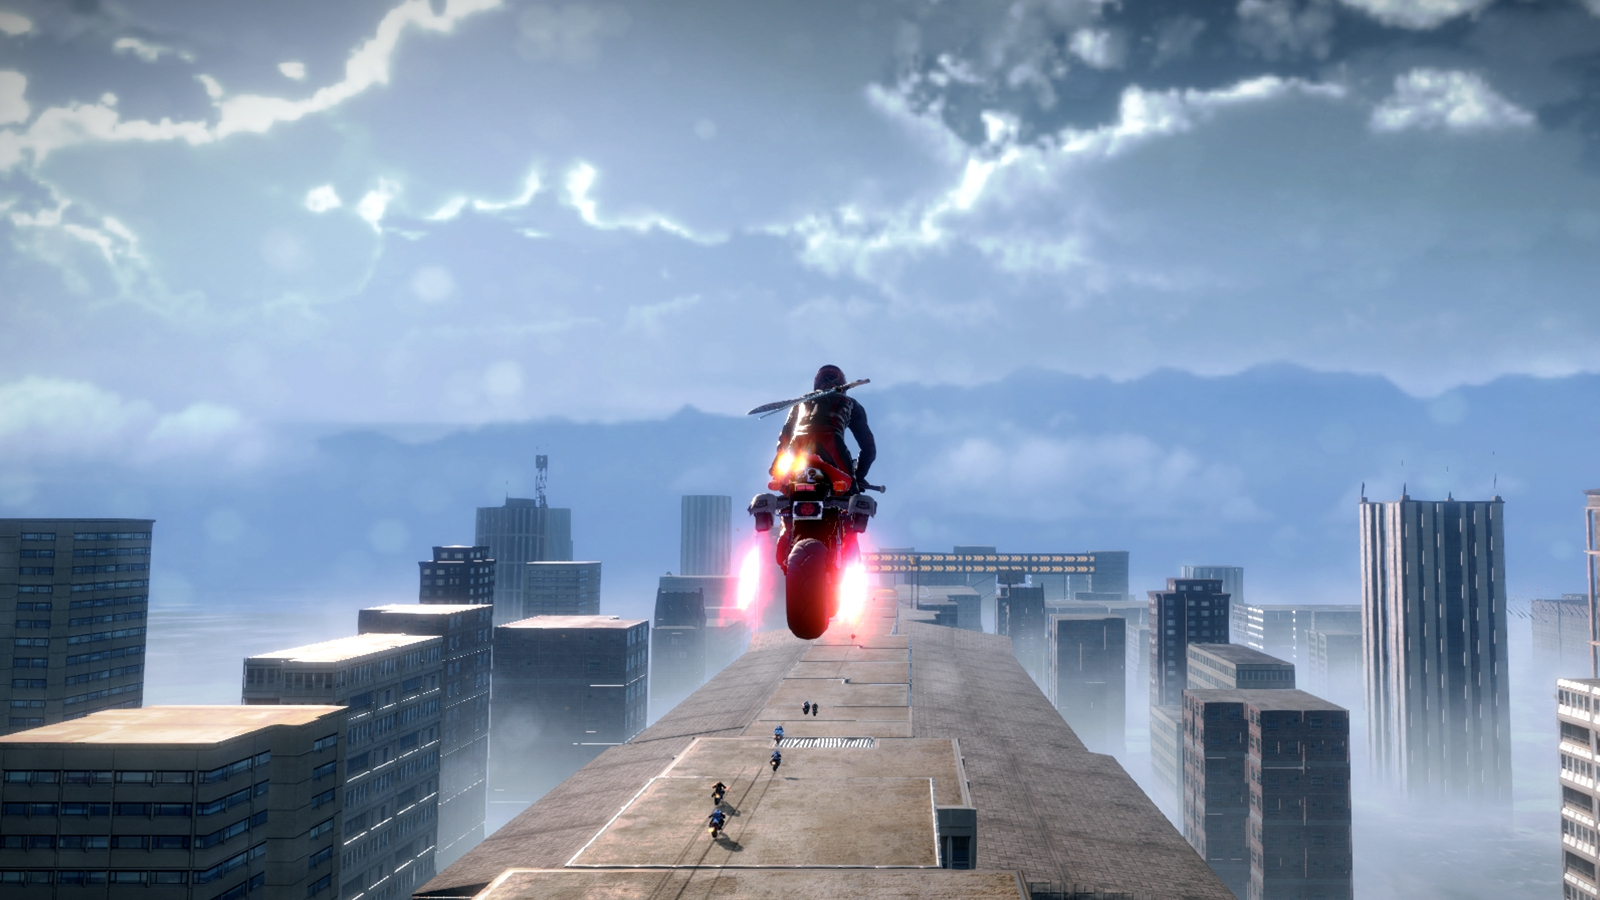 Rooftop riding in Road Redemption